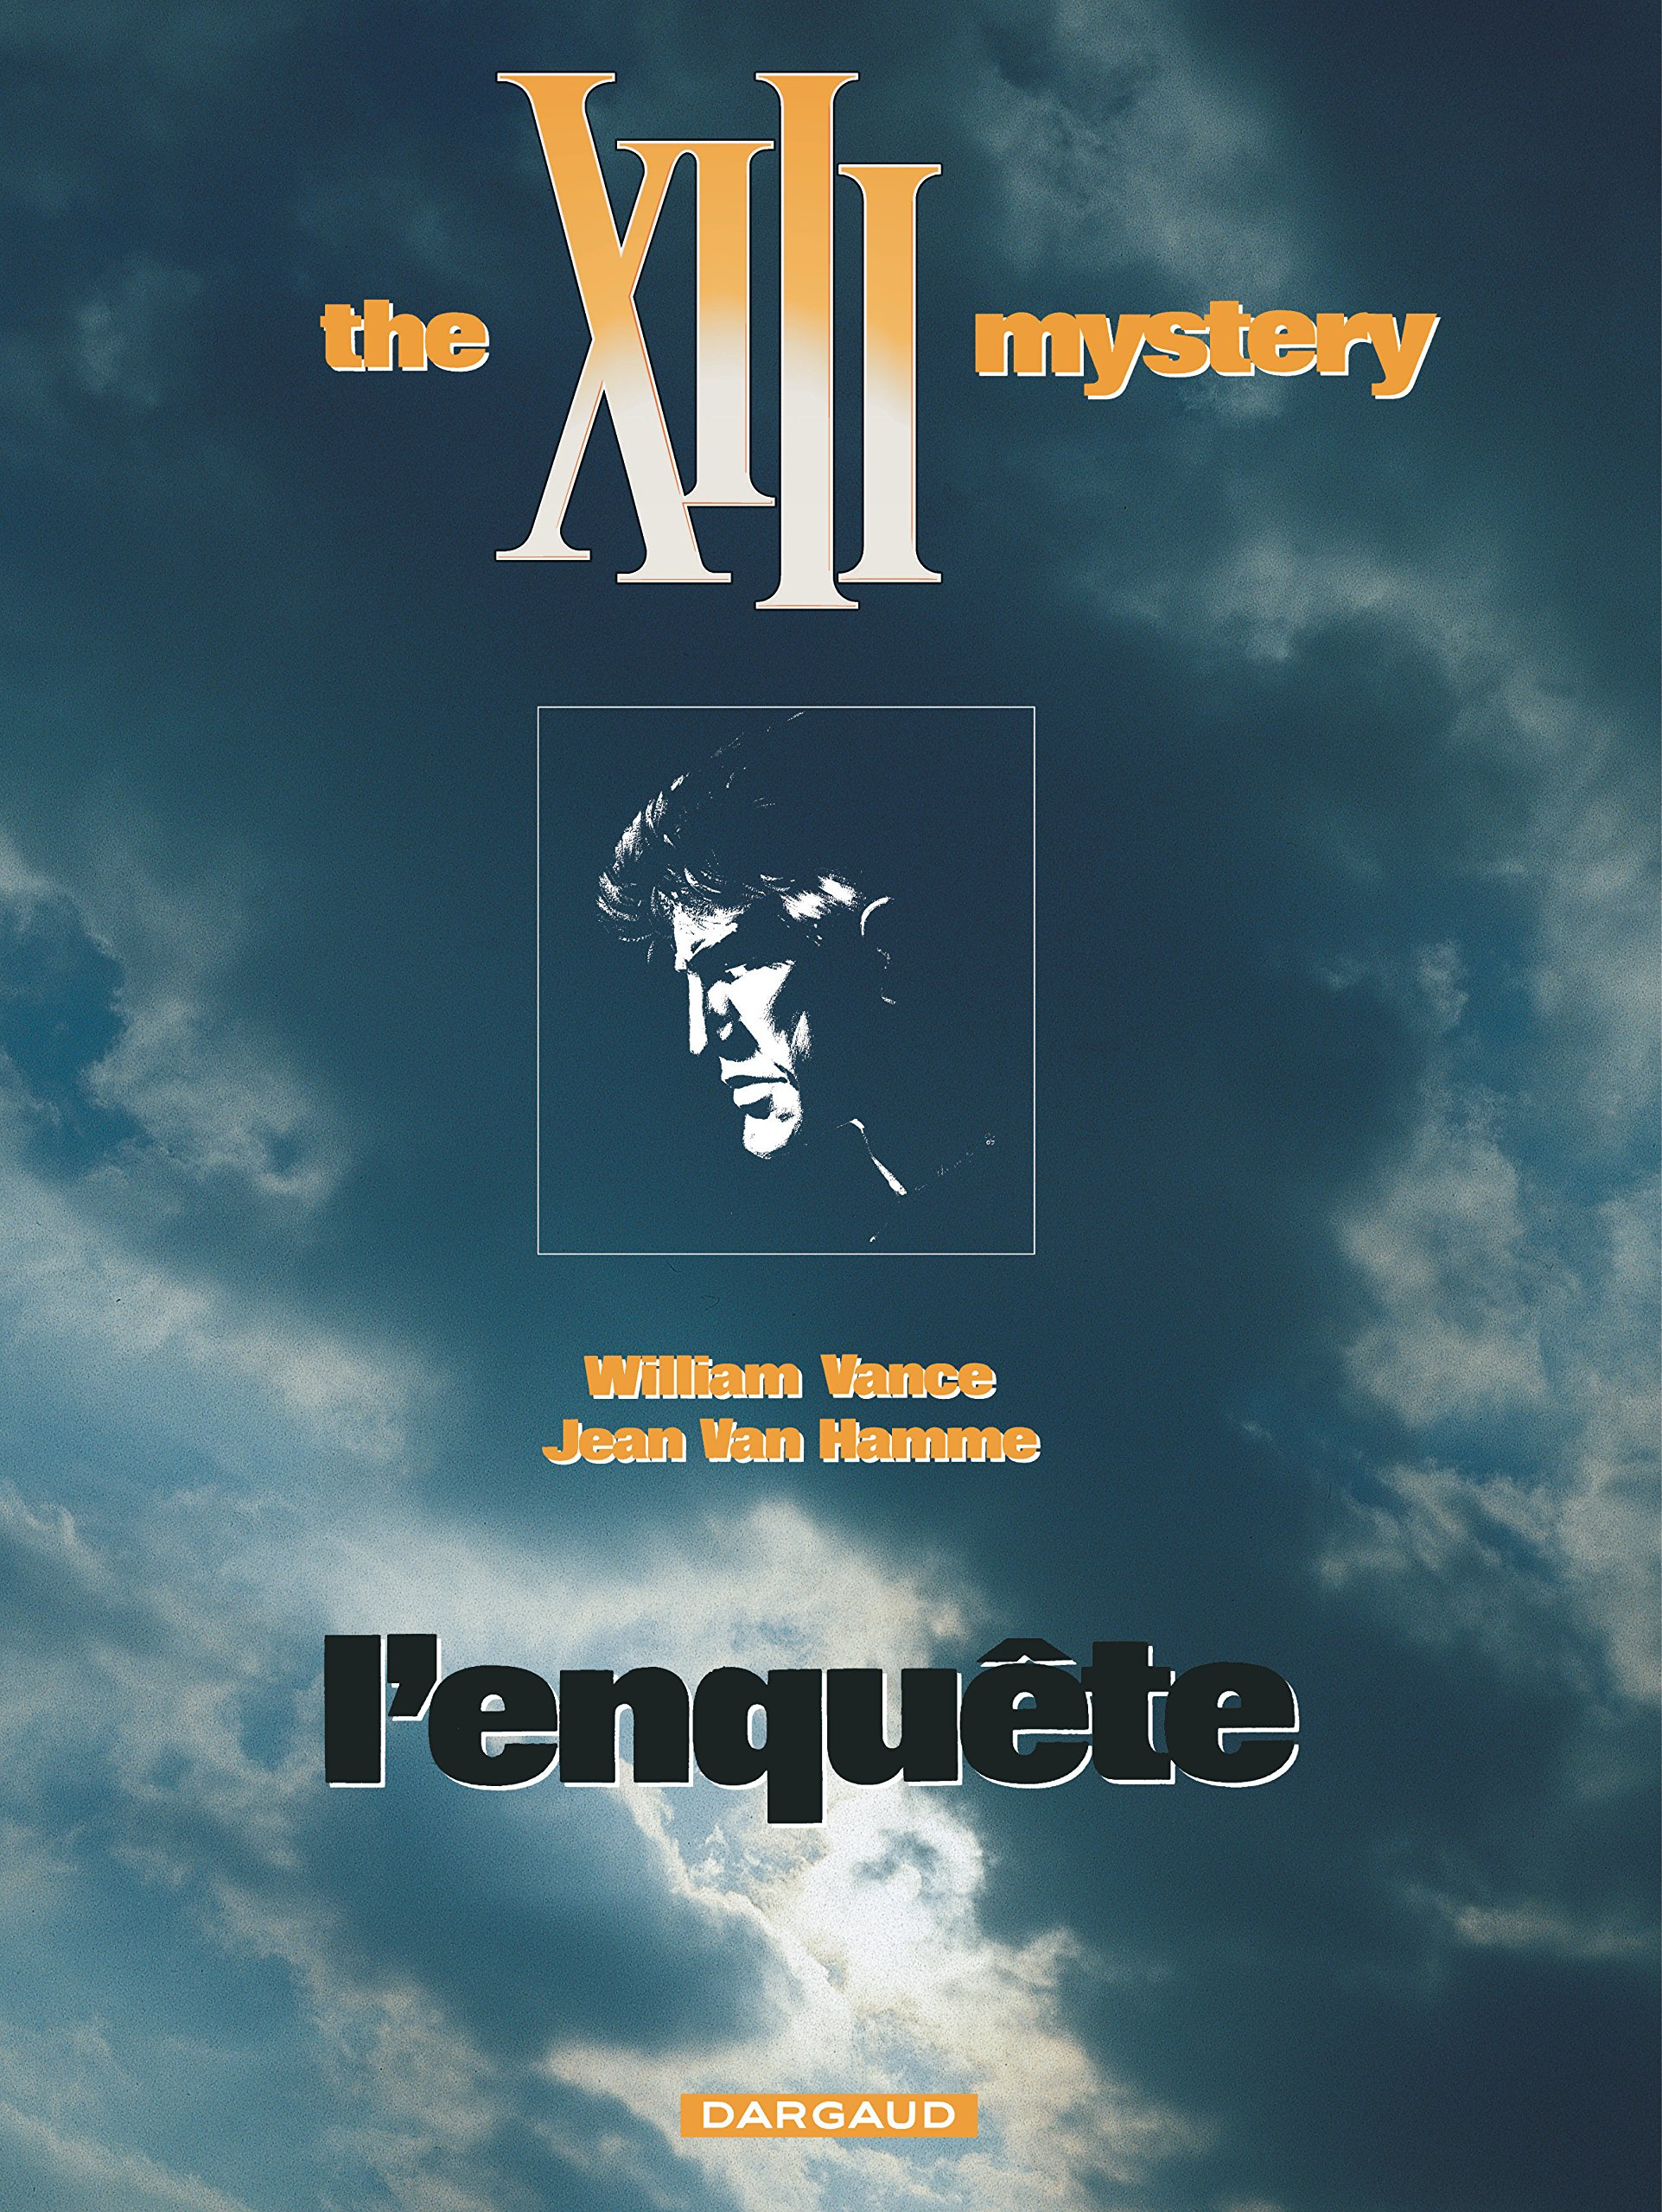 XIII, tome 13, L'enquête : the XIII mystery: Jean Van Hamme, William Vance:  9782871290919: Amazon.com: Books